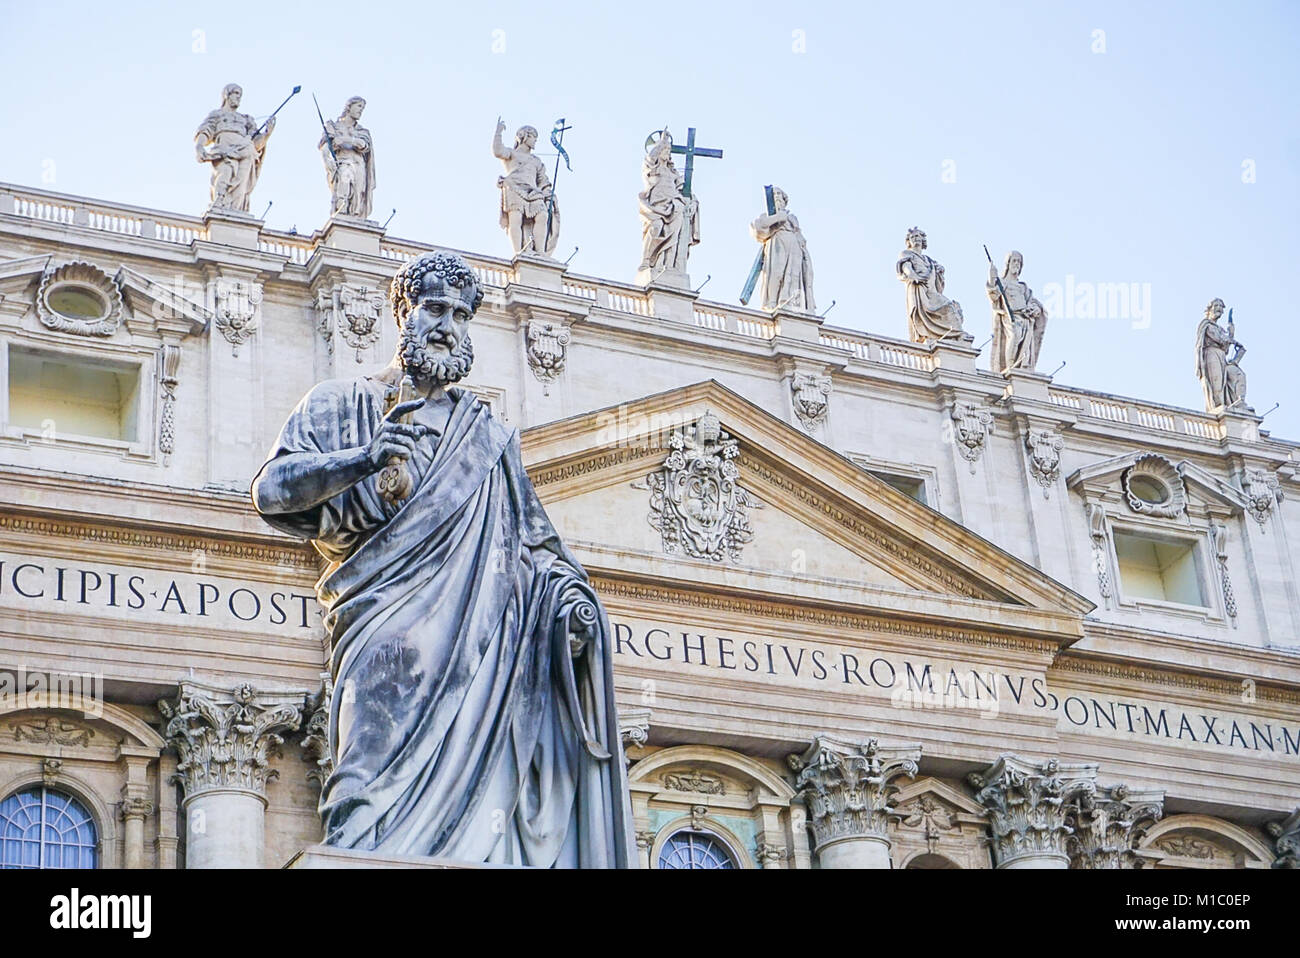 The Exterior of St Peter's Basilica in Vatican City just outside of Rome, Italy Stock Photo